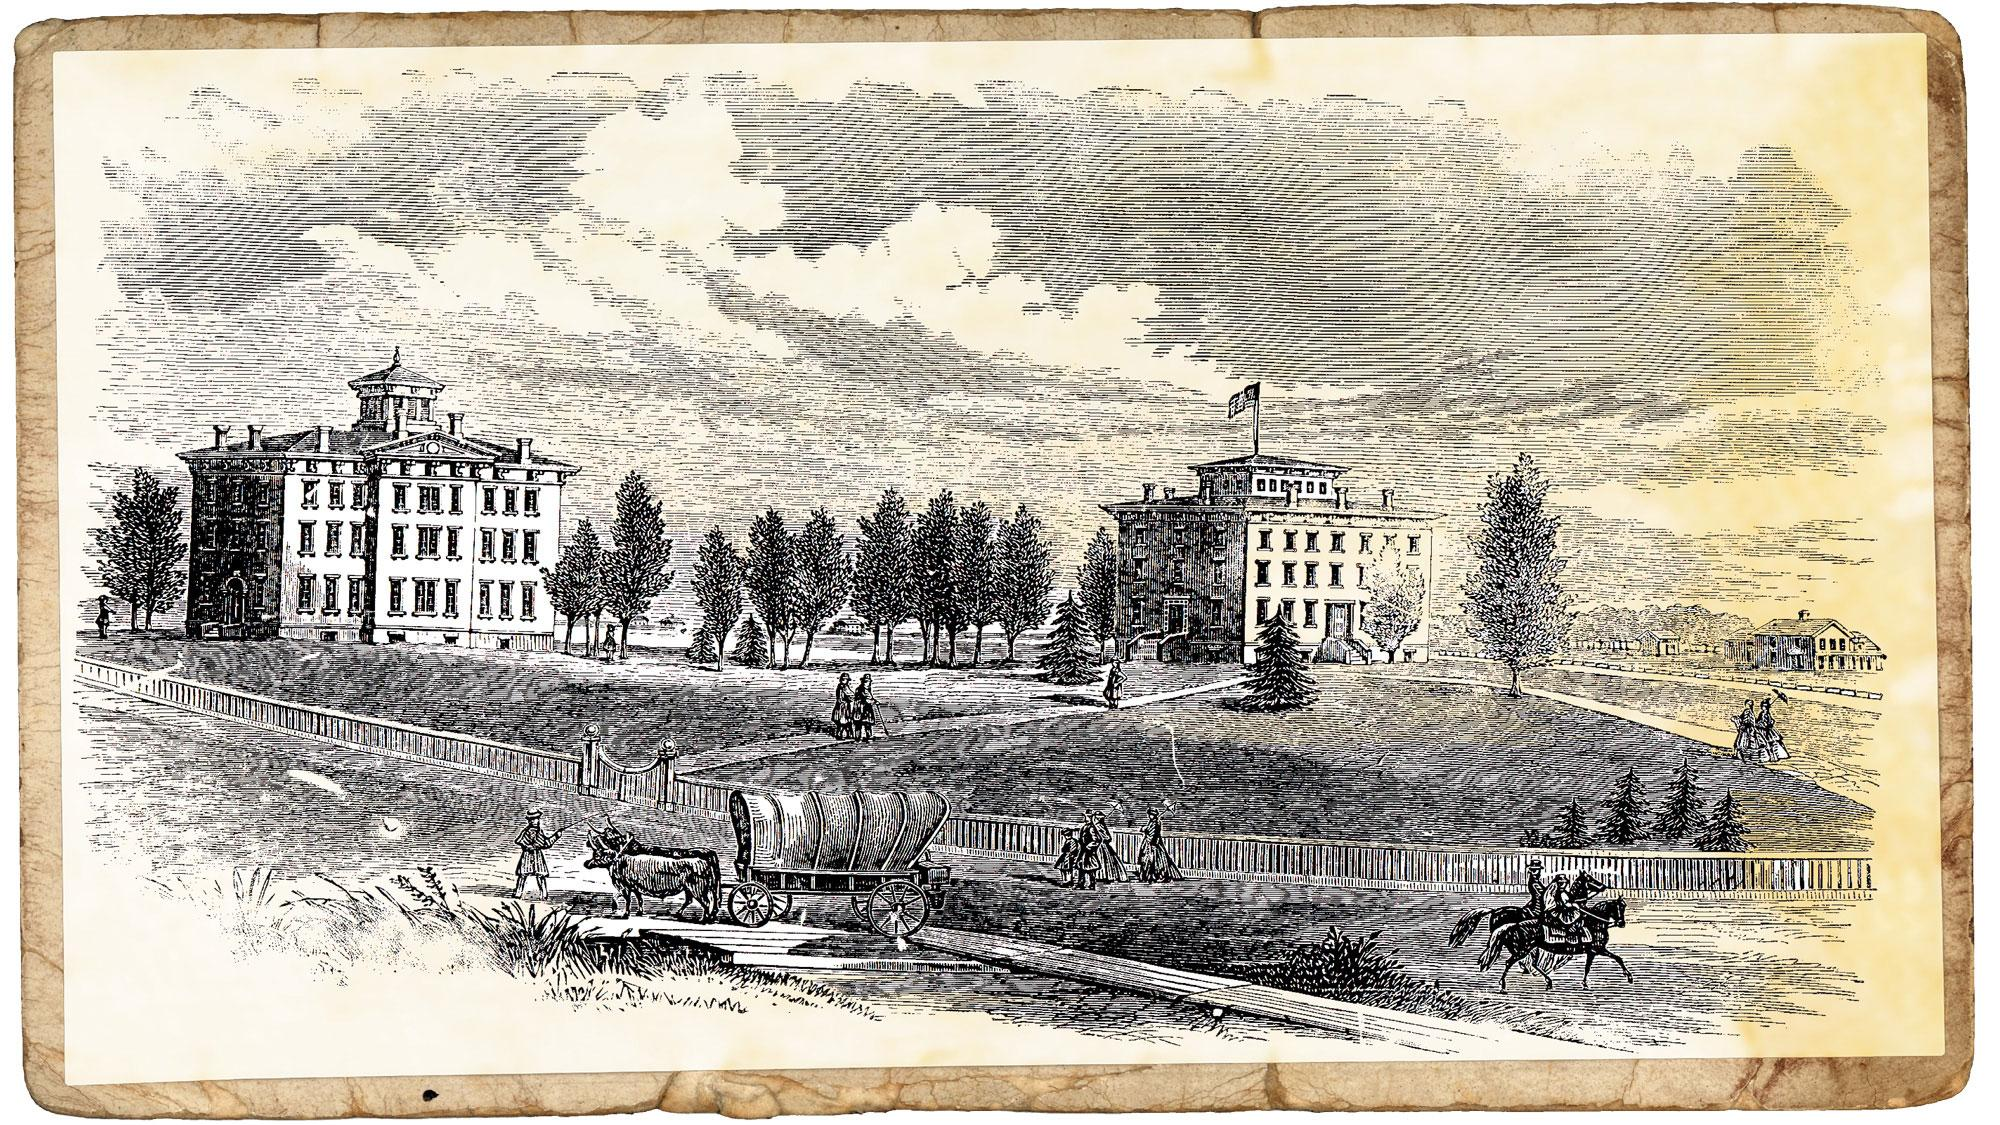 Two buildings on a slight rise, a covered wagon and people on horseback are in the street below